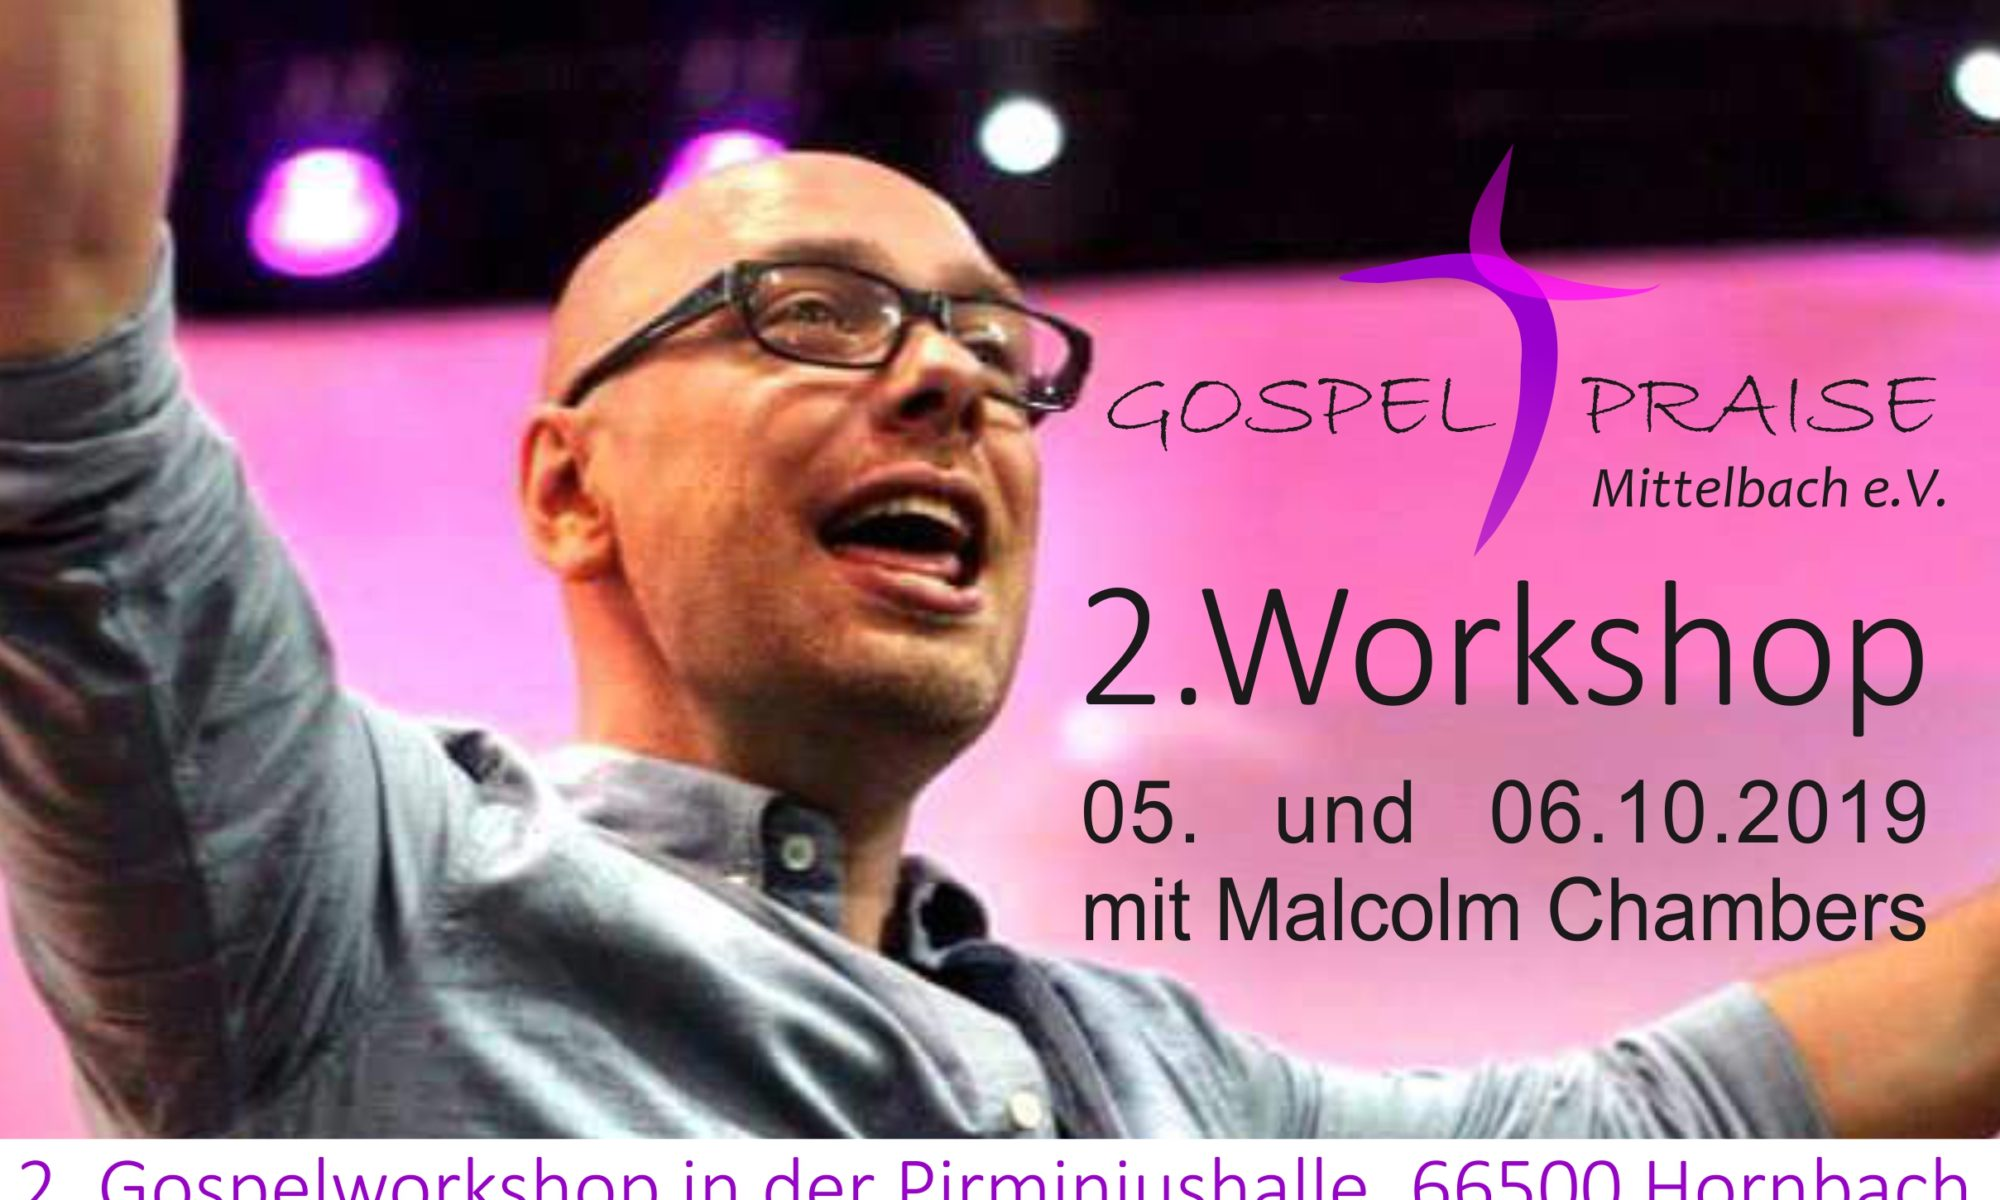 2. Gospelworkshop in der Pirminiushalle in Hornbach